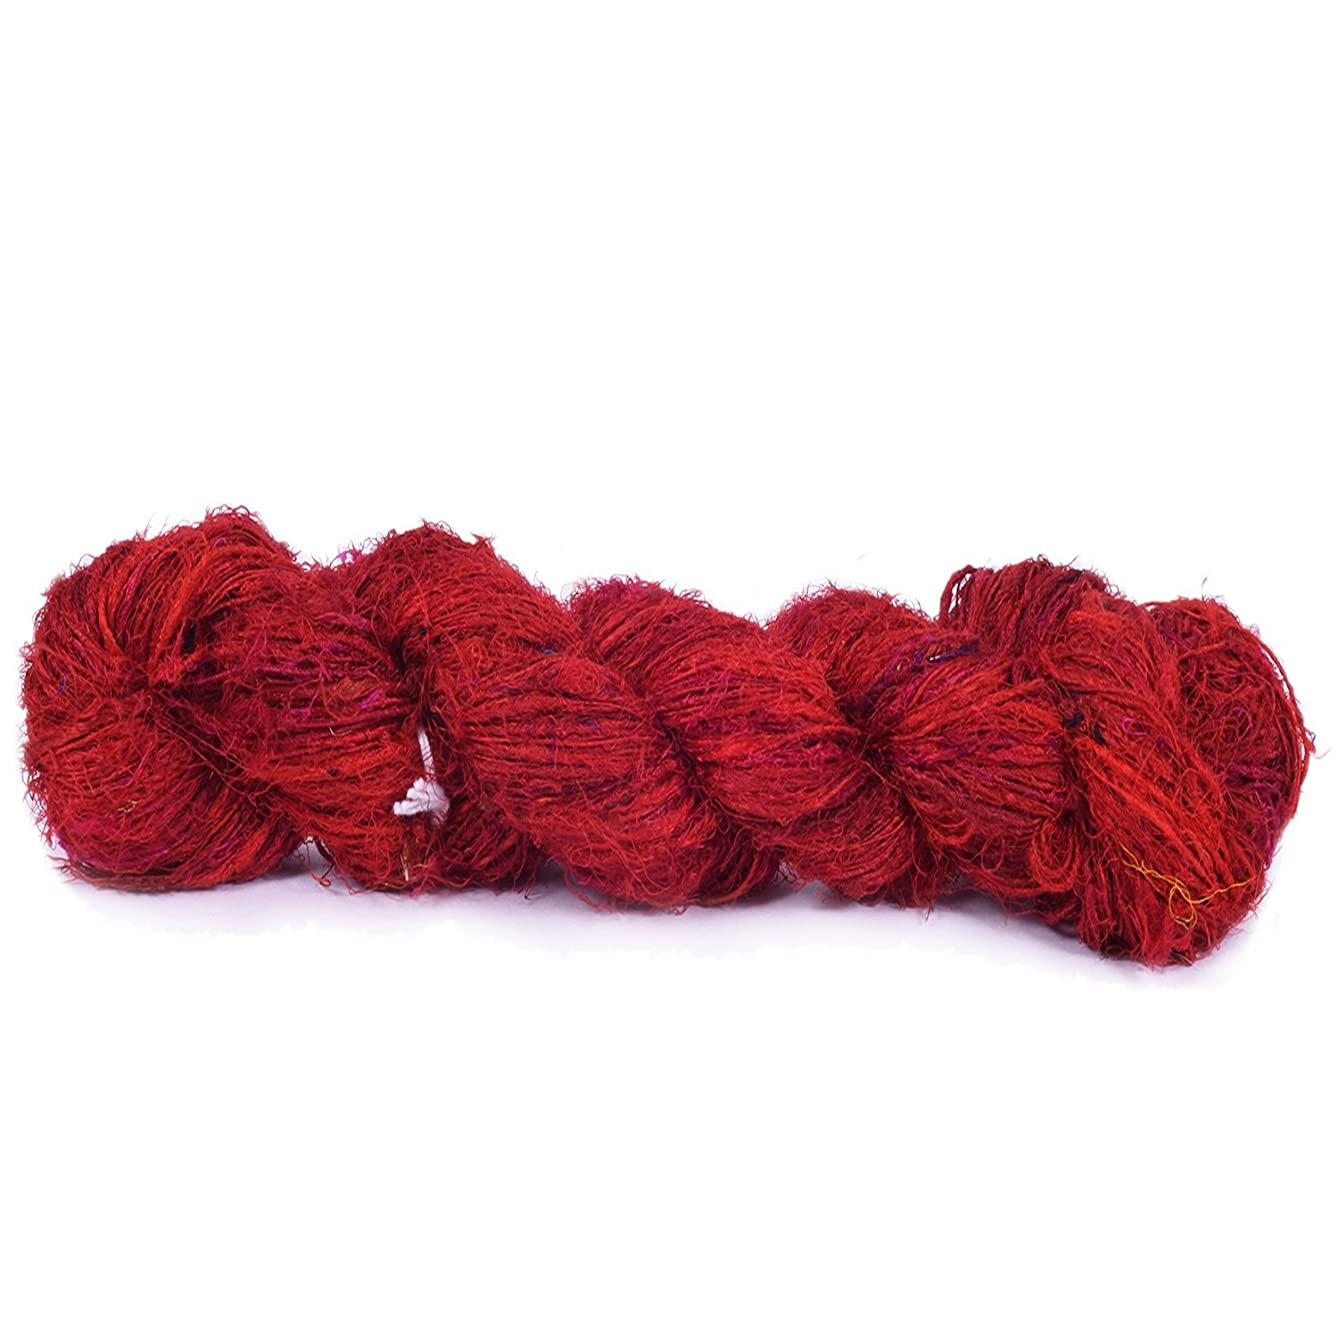 Premium Recycled Sari Silk Yarn - Red Shade 165 Yards | Good for Knitting, Crocheting and Jewelry Making